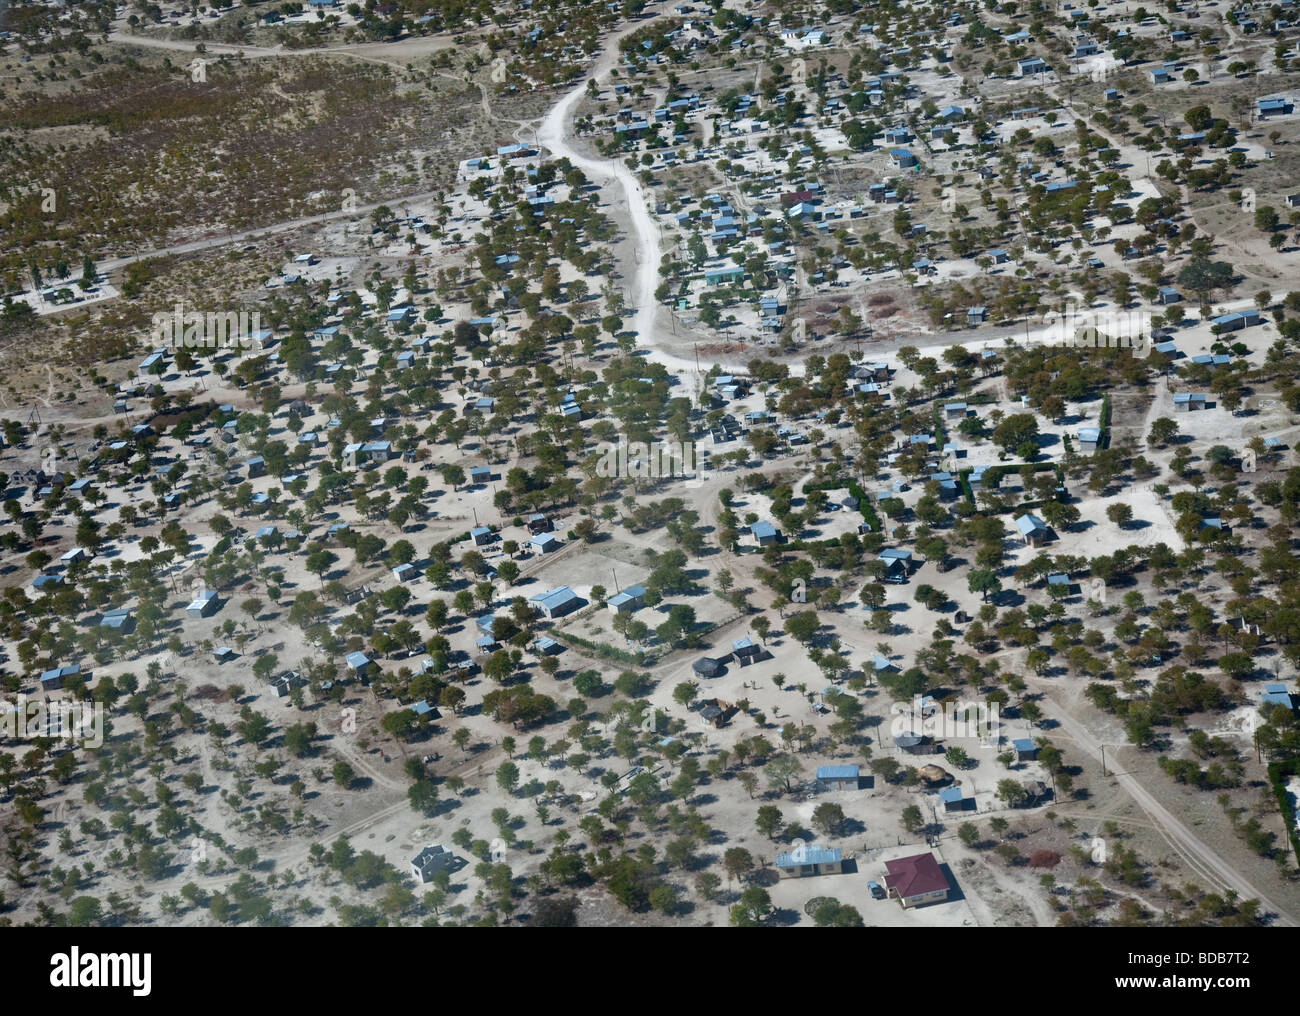 Aerial view of the town of Maun in northern Botswana, taken from a Cessna plane. - Stock Image